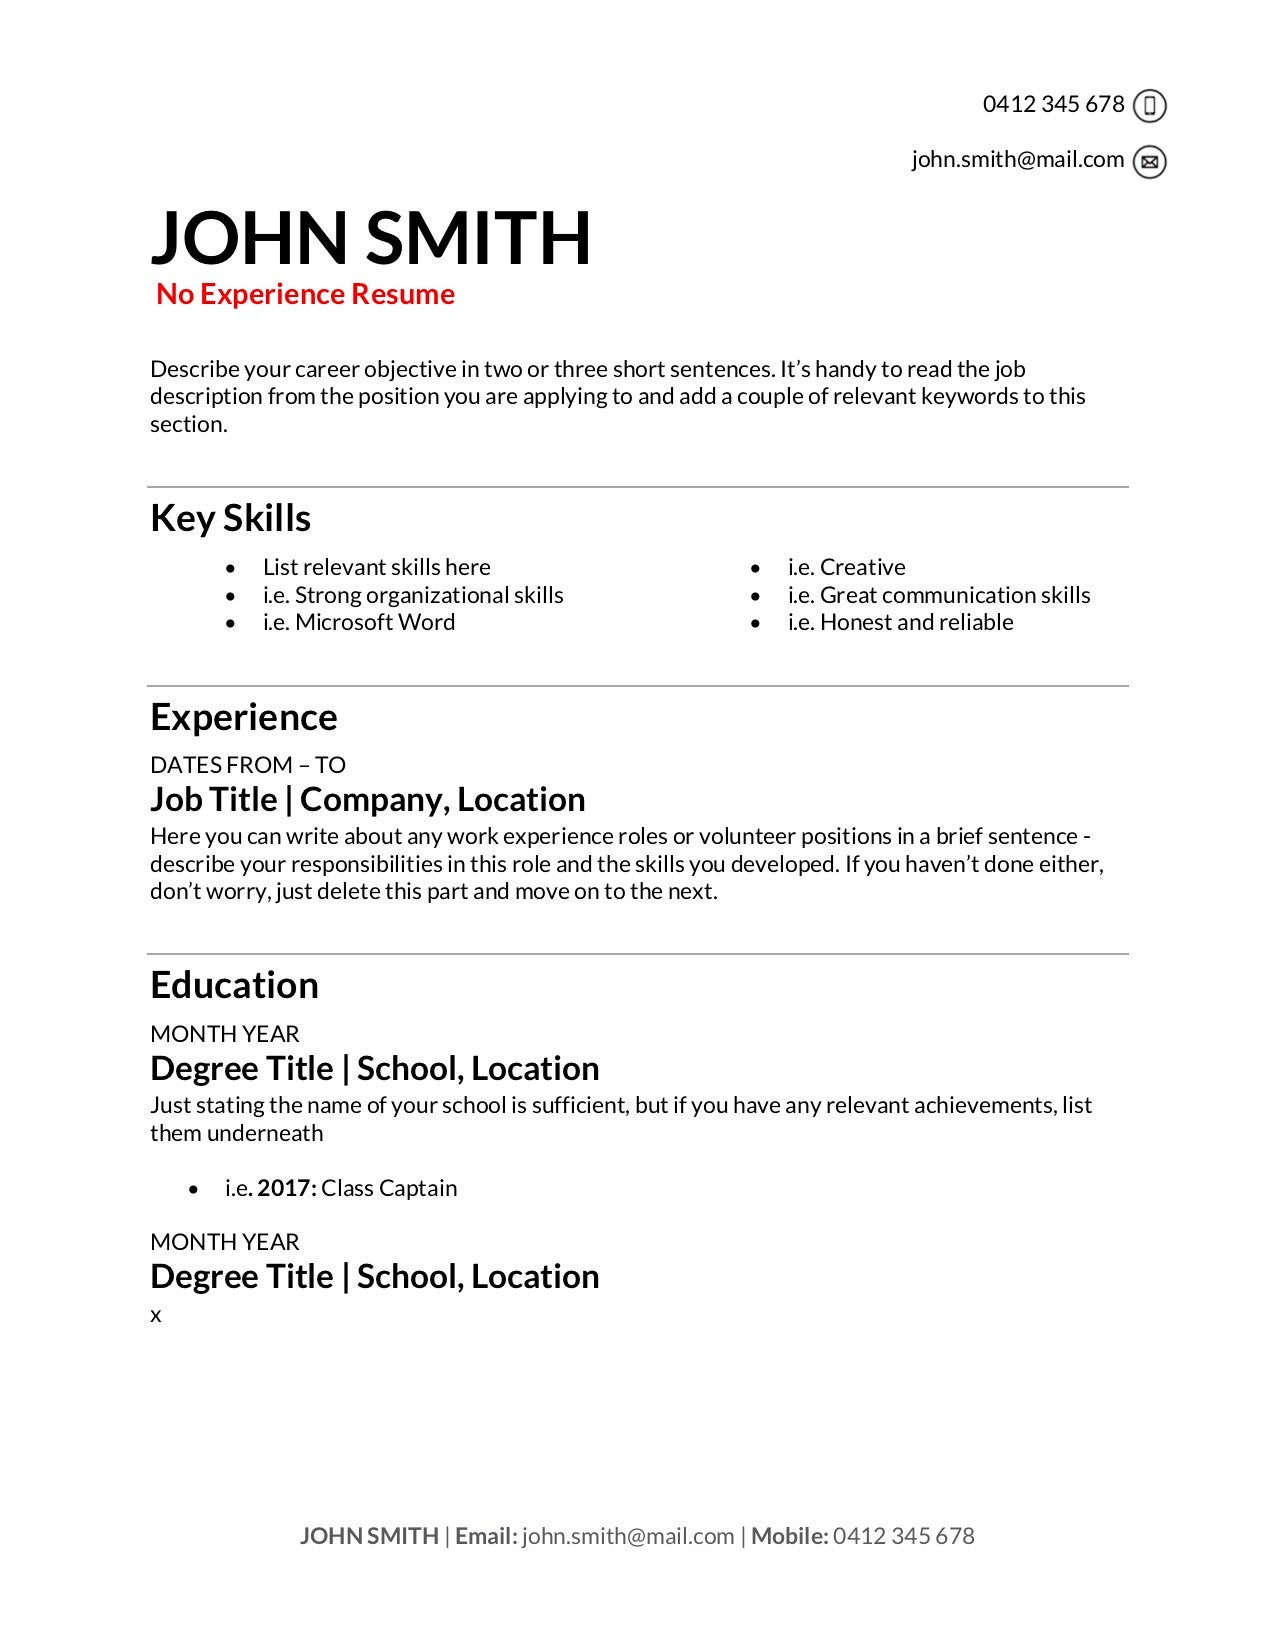 free resume templates to write in training au employment template no experience teacher Resume Employment Resume Template